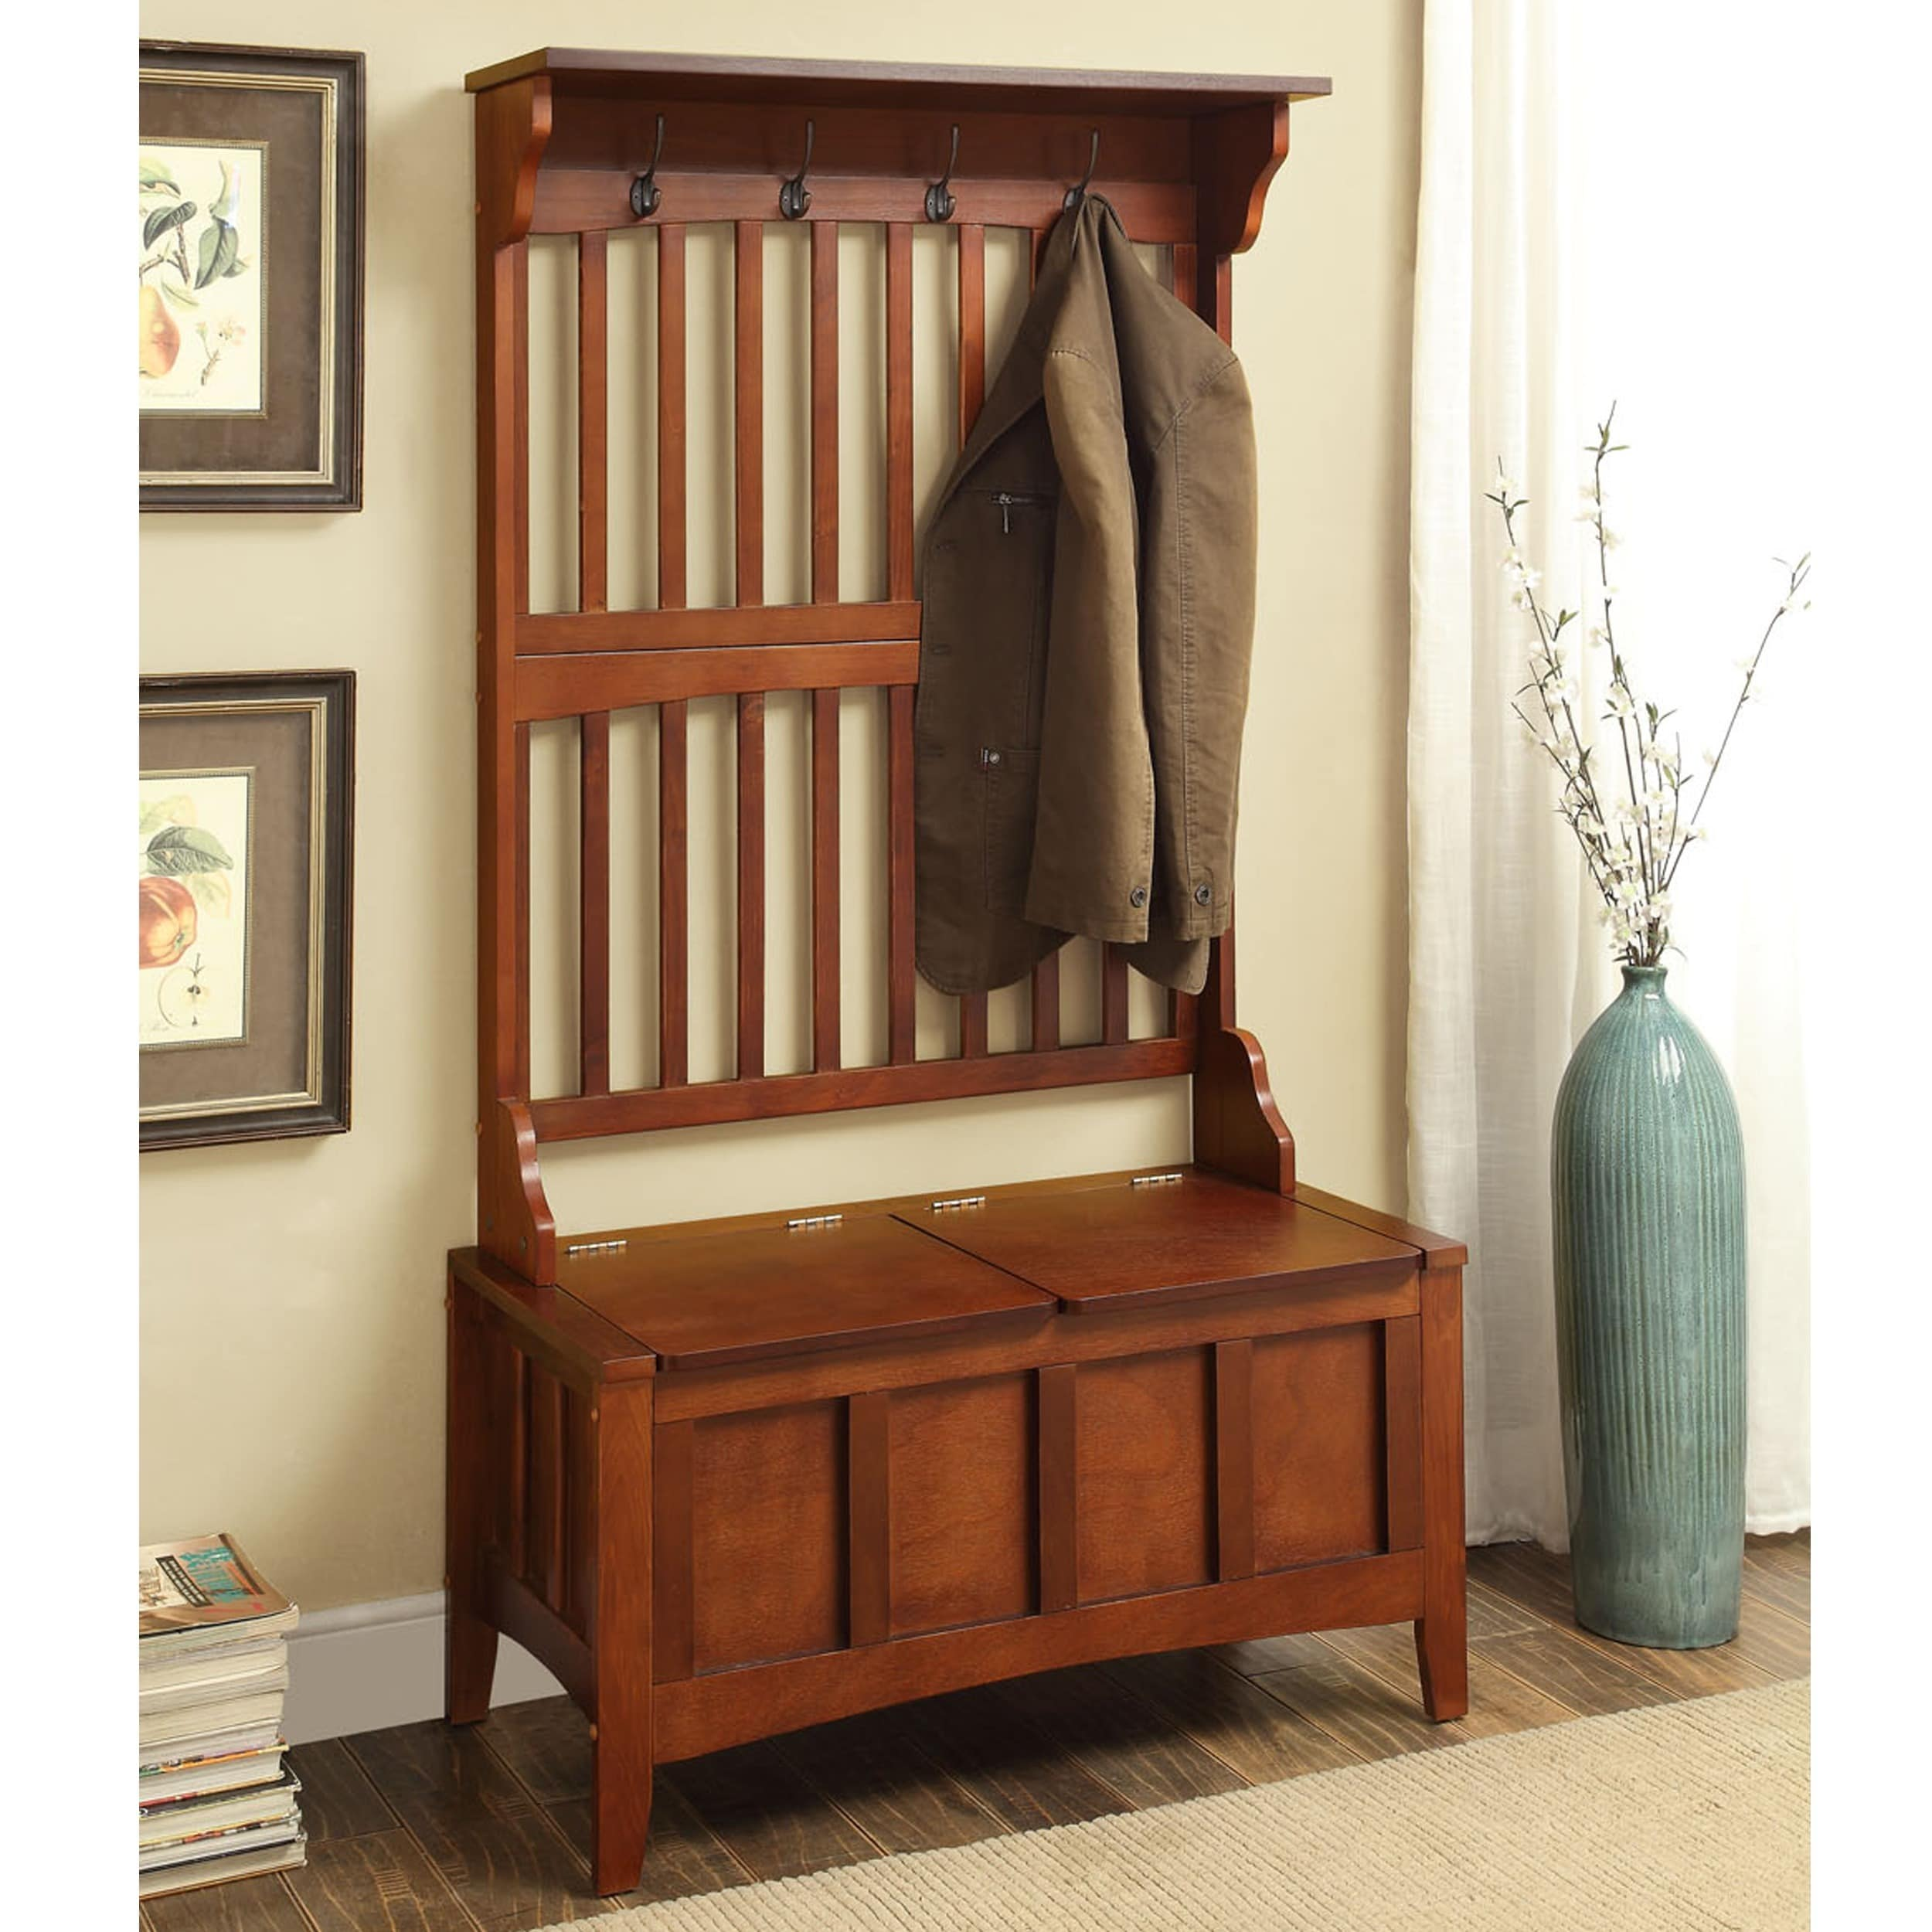 Beau Oh! Home Eloise Entryway Hall Tree With Split Seat Storage Bench